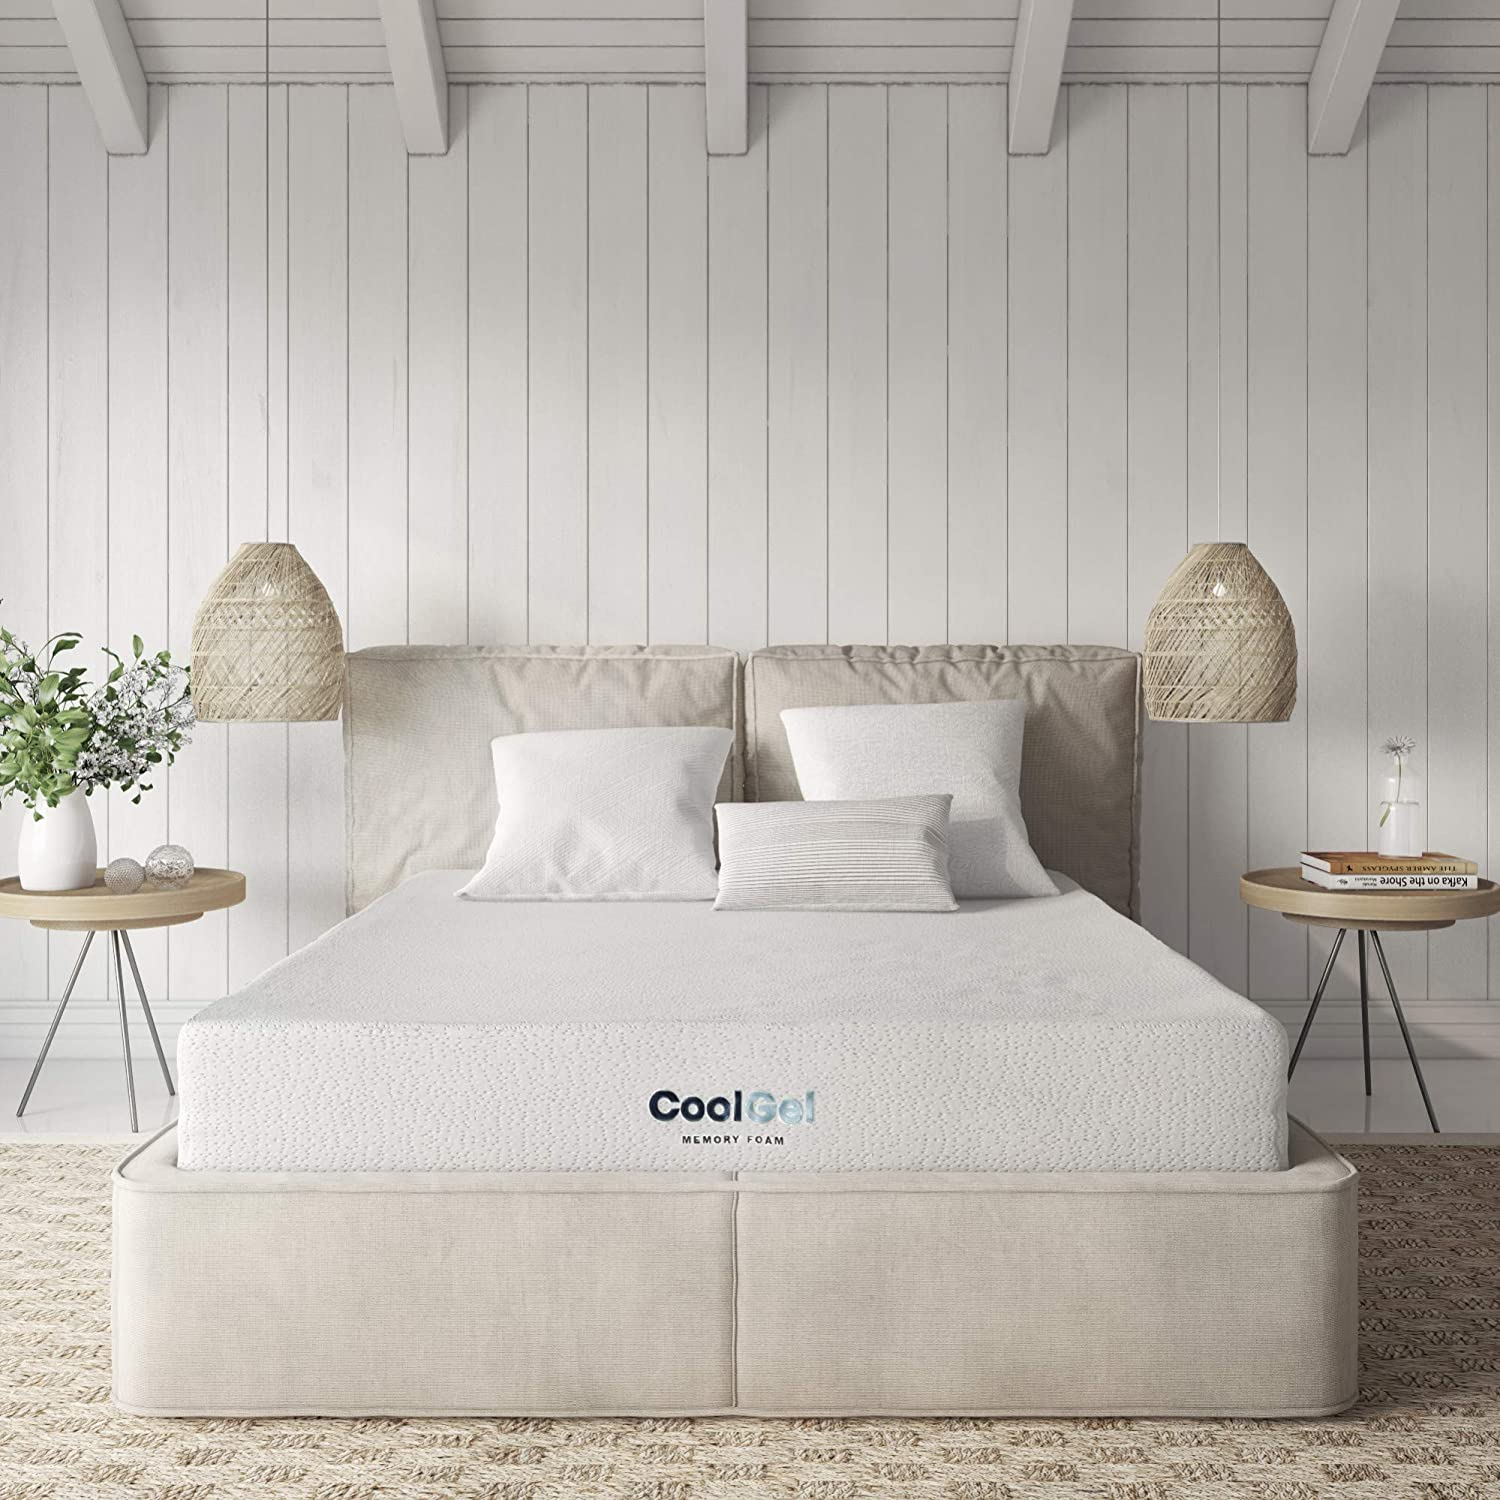 Classic Brands Ventilated Memory Foam Mattress